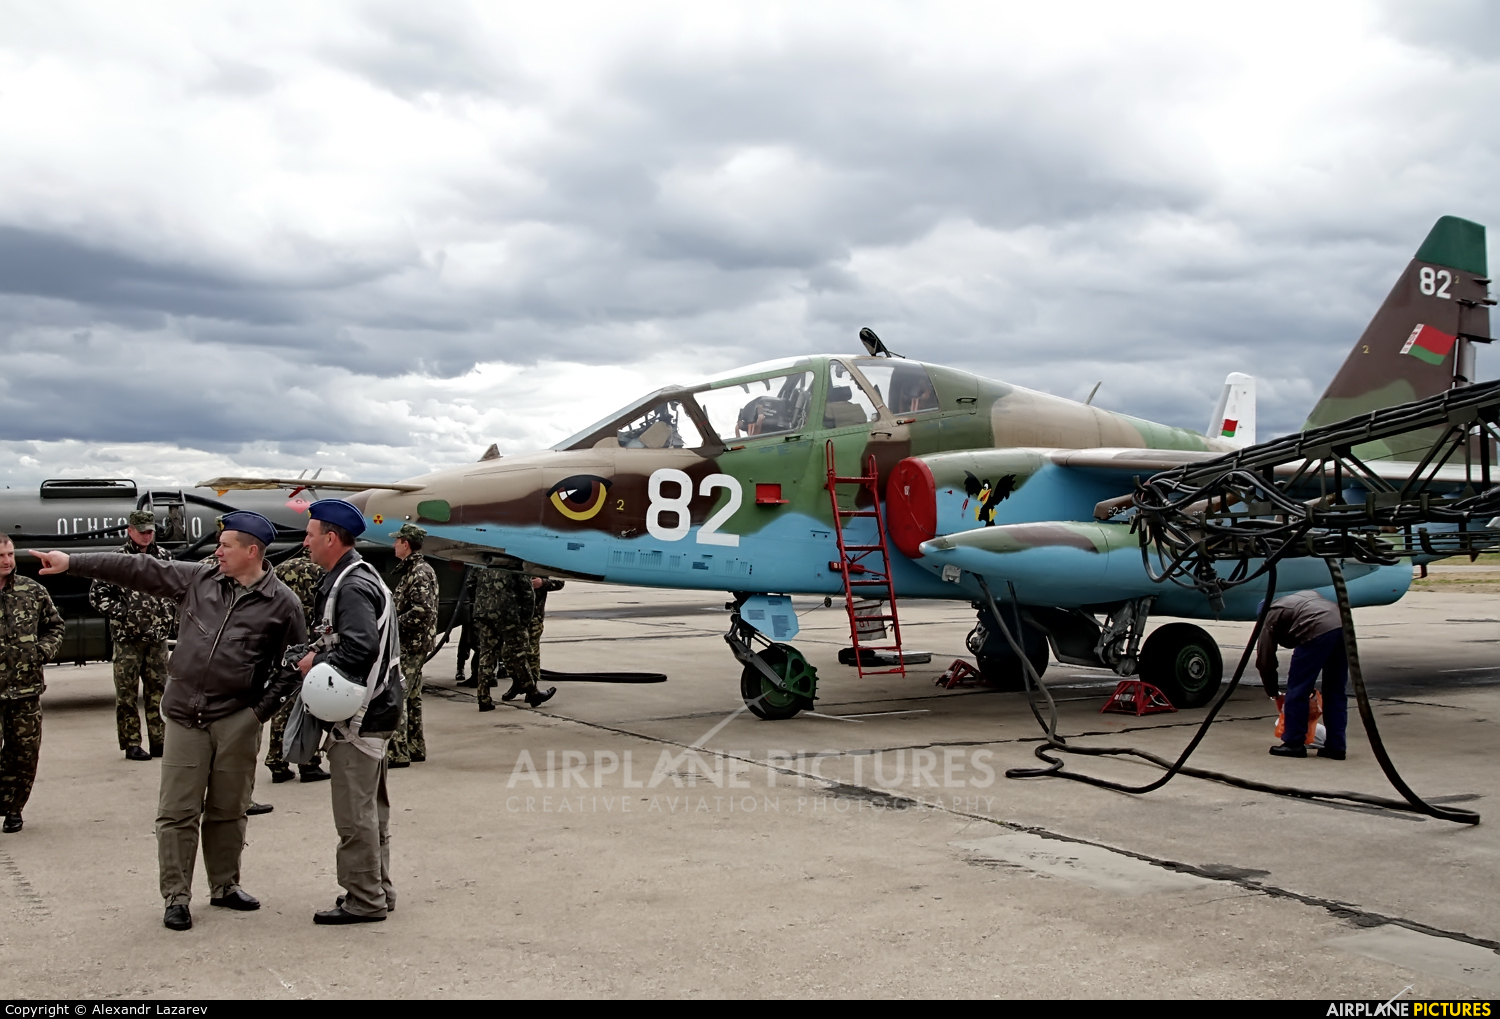 Belarus - Air Force 82 aircraft at Minsk Machulishchi